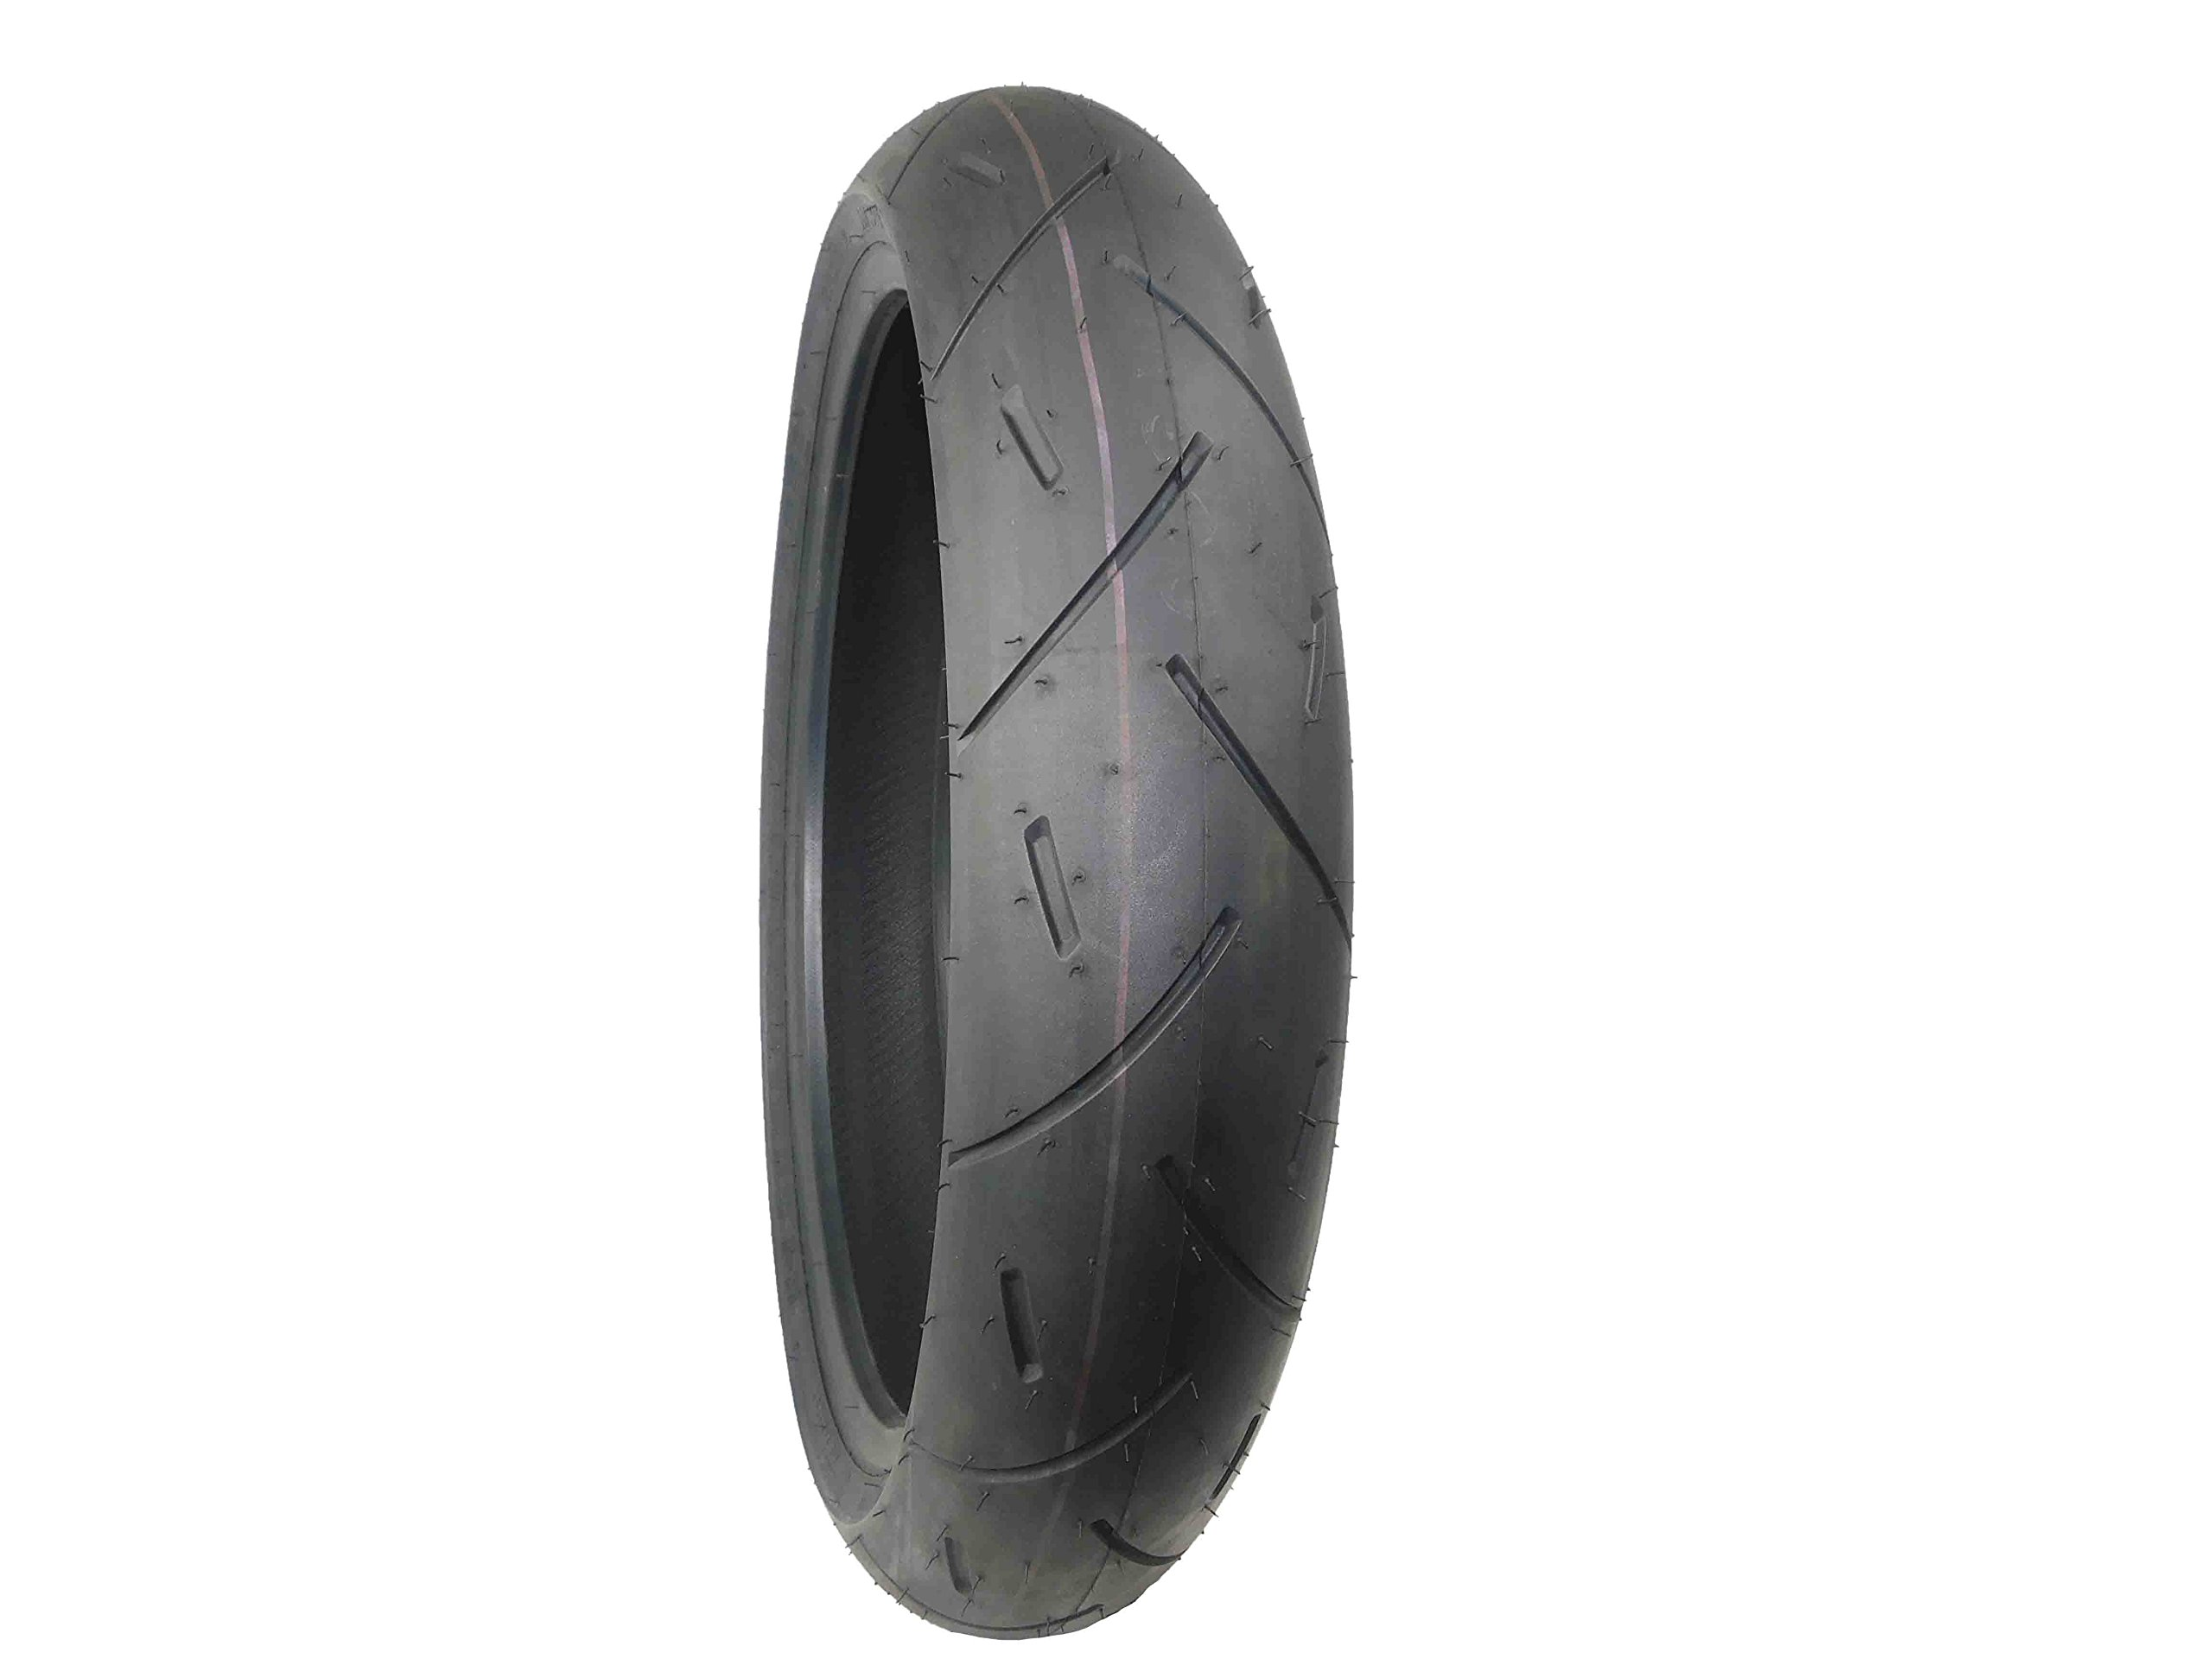 One Front Full Bore M1 Tire (120/60ZR17 Front) 120/60-17